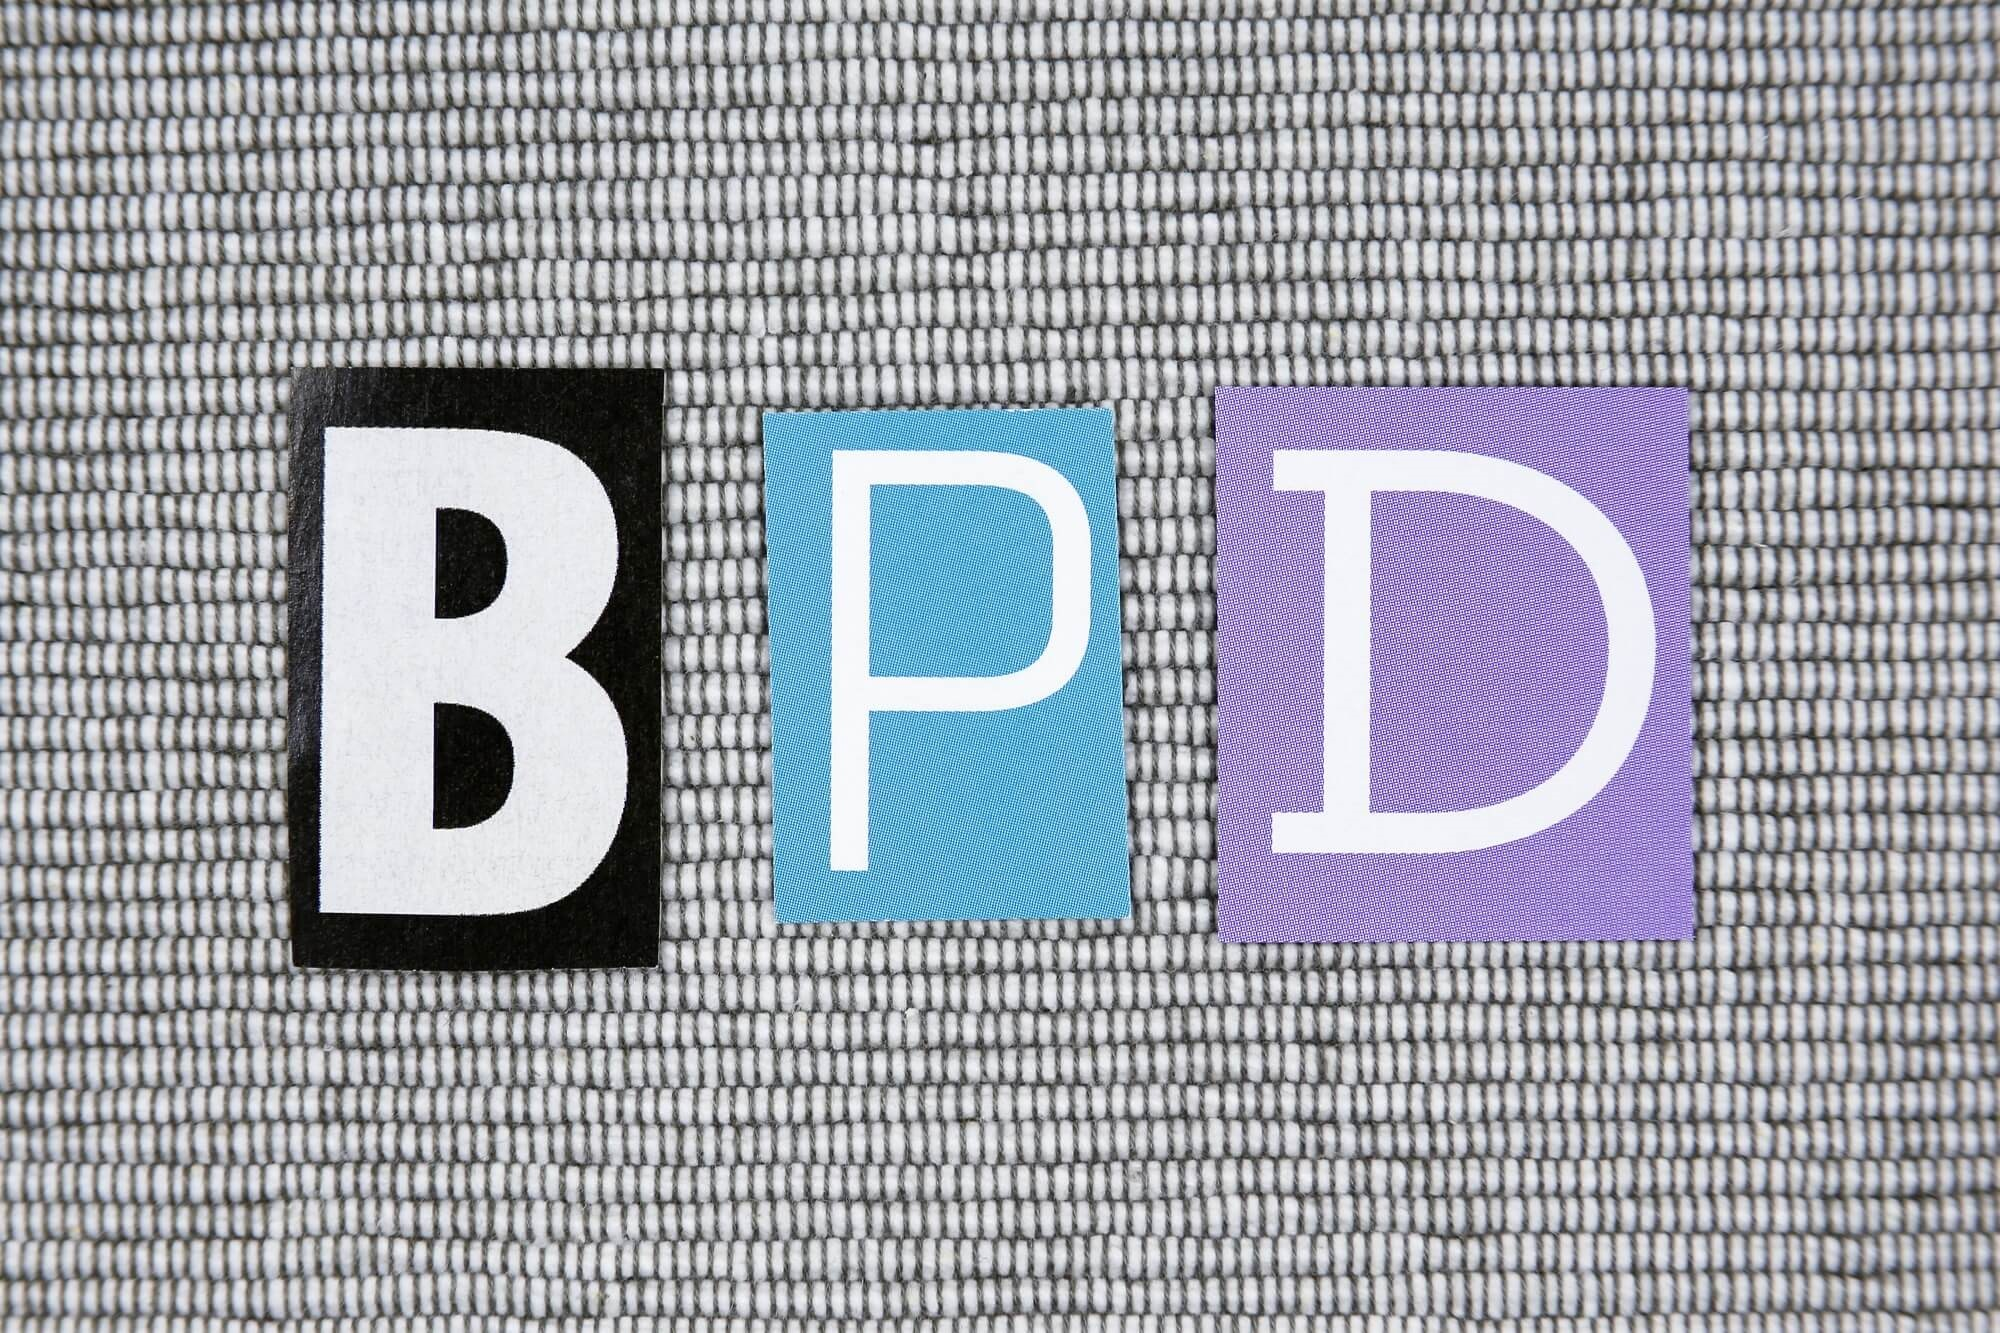 Updates In Borderline Personality Disorder Your Questions